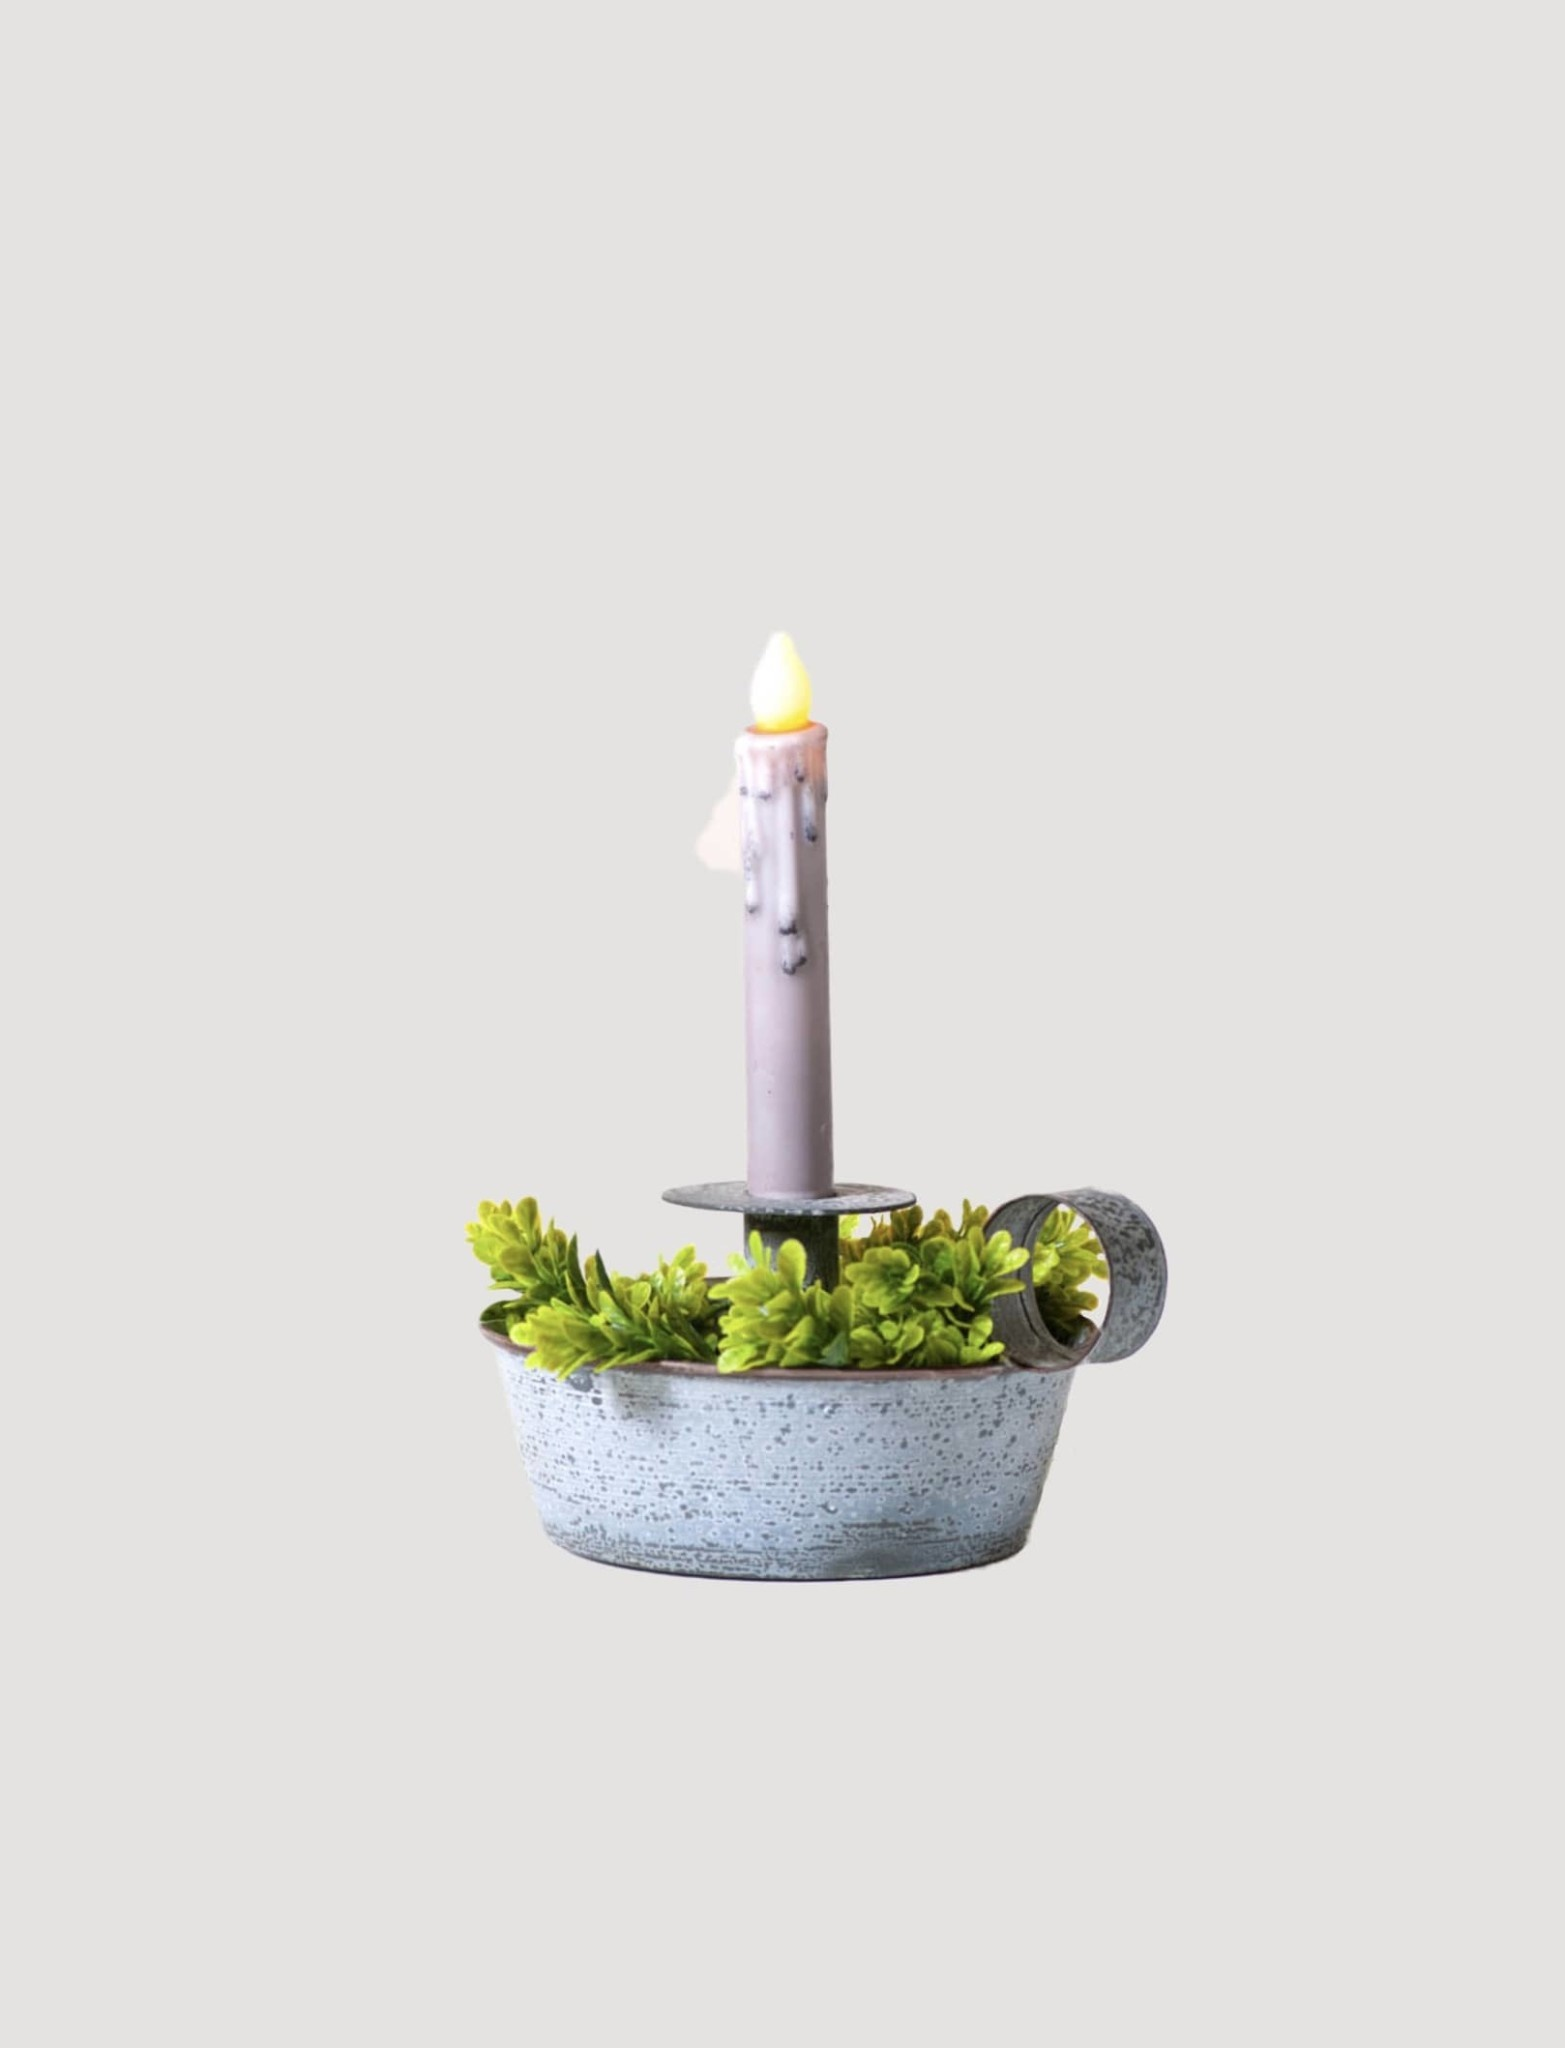 Irvin's Tinware Tapered Pan Candle Holder In Weathered Zinc